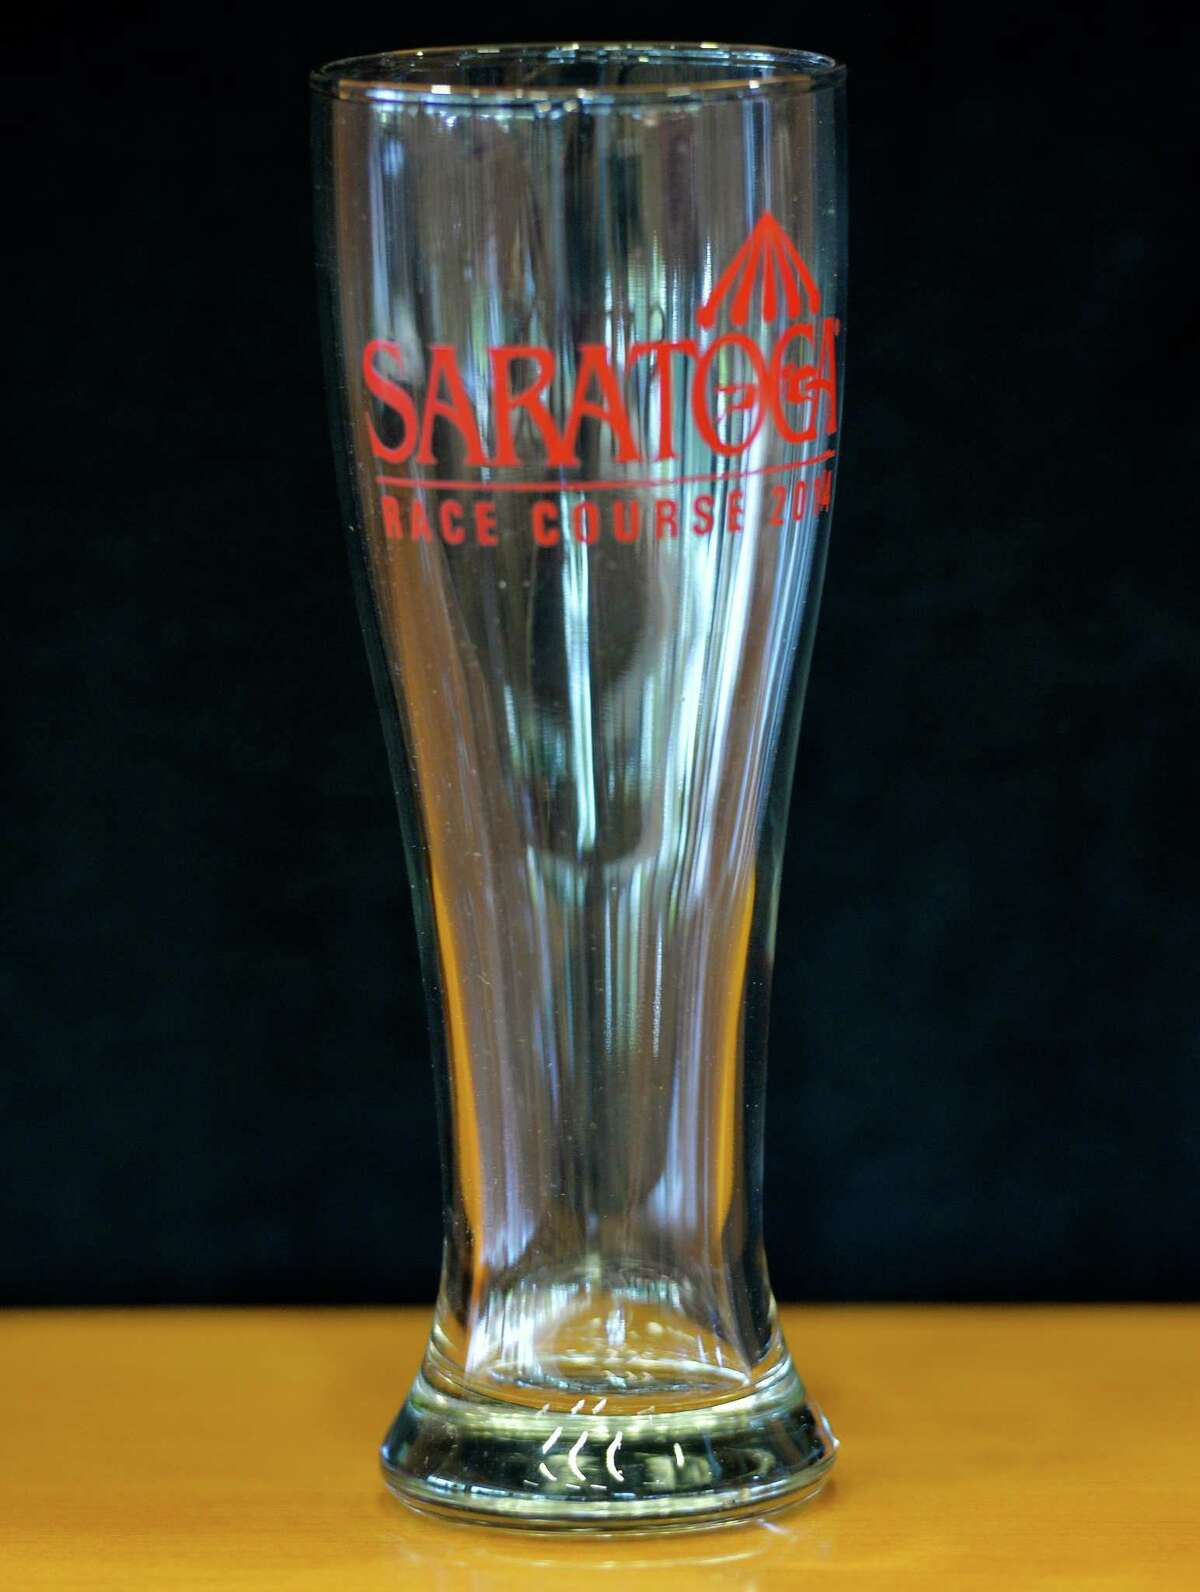 PAST GIVEAWAYS: A Saratoga pilsner glass will be one of the four giveaway items for this year's Saratoga Race Course meeting and it was displayed at a press briefing held Monday afternoon June 23, 2014 at Saratoga, N.Y. The glass will be given away July 27. (Skip Dickstein / Times Union)